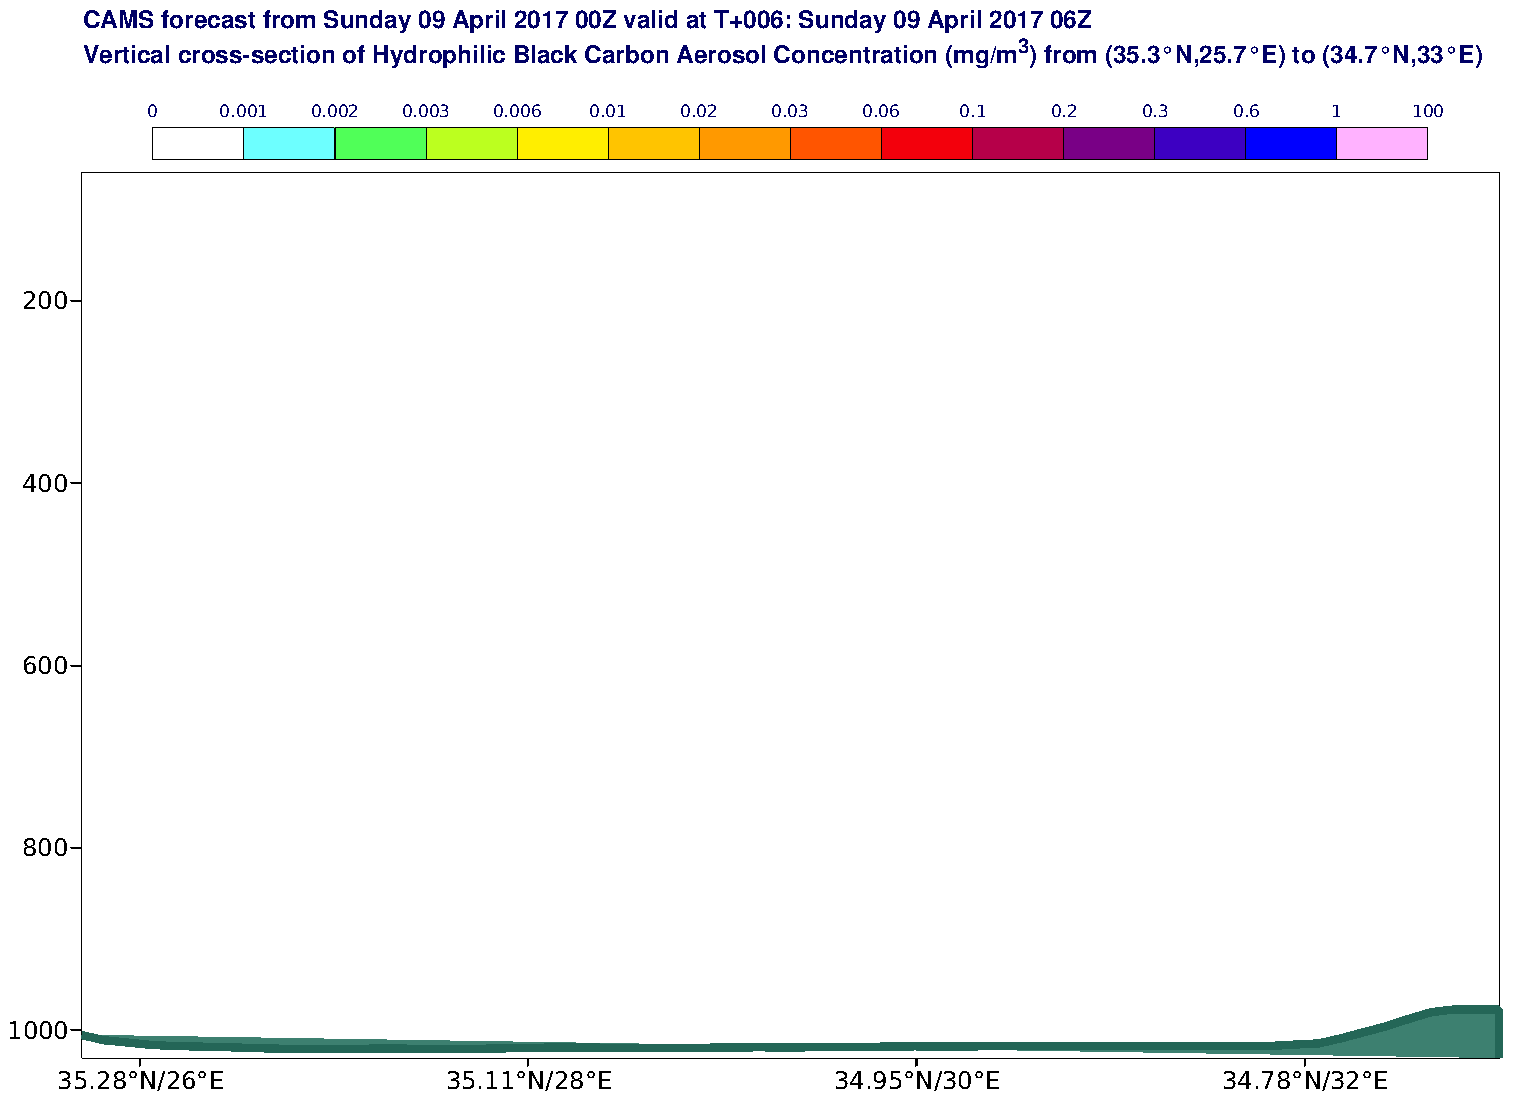 Vertical cross-section of Hydrophilic Black Carbon Aerosol Concentration (mg/m3) valid at T6 - 2017-04-09 06:00